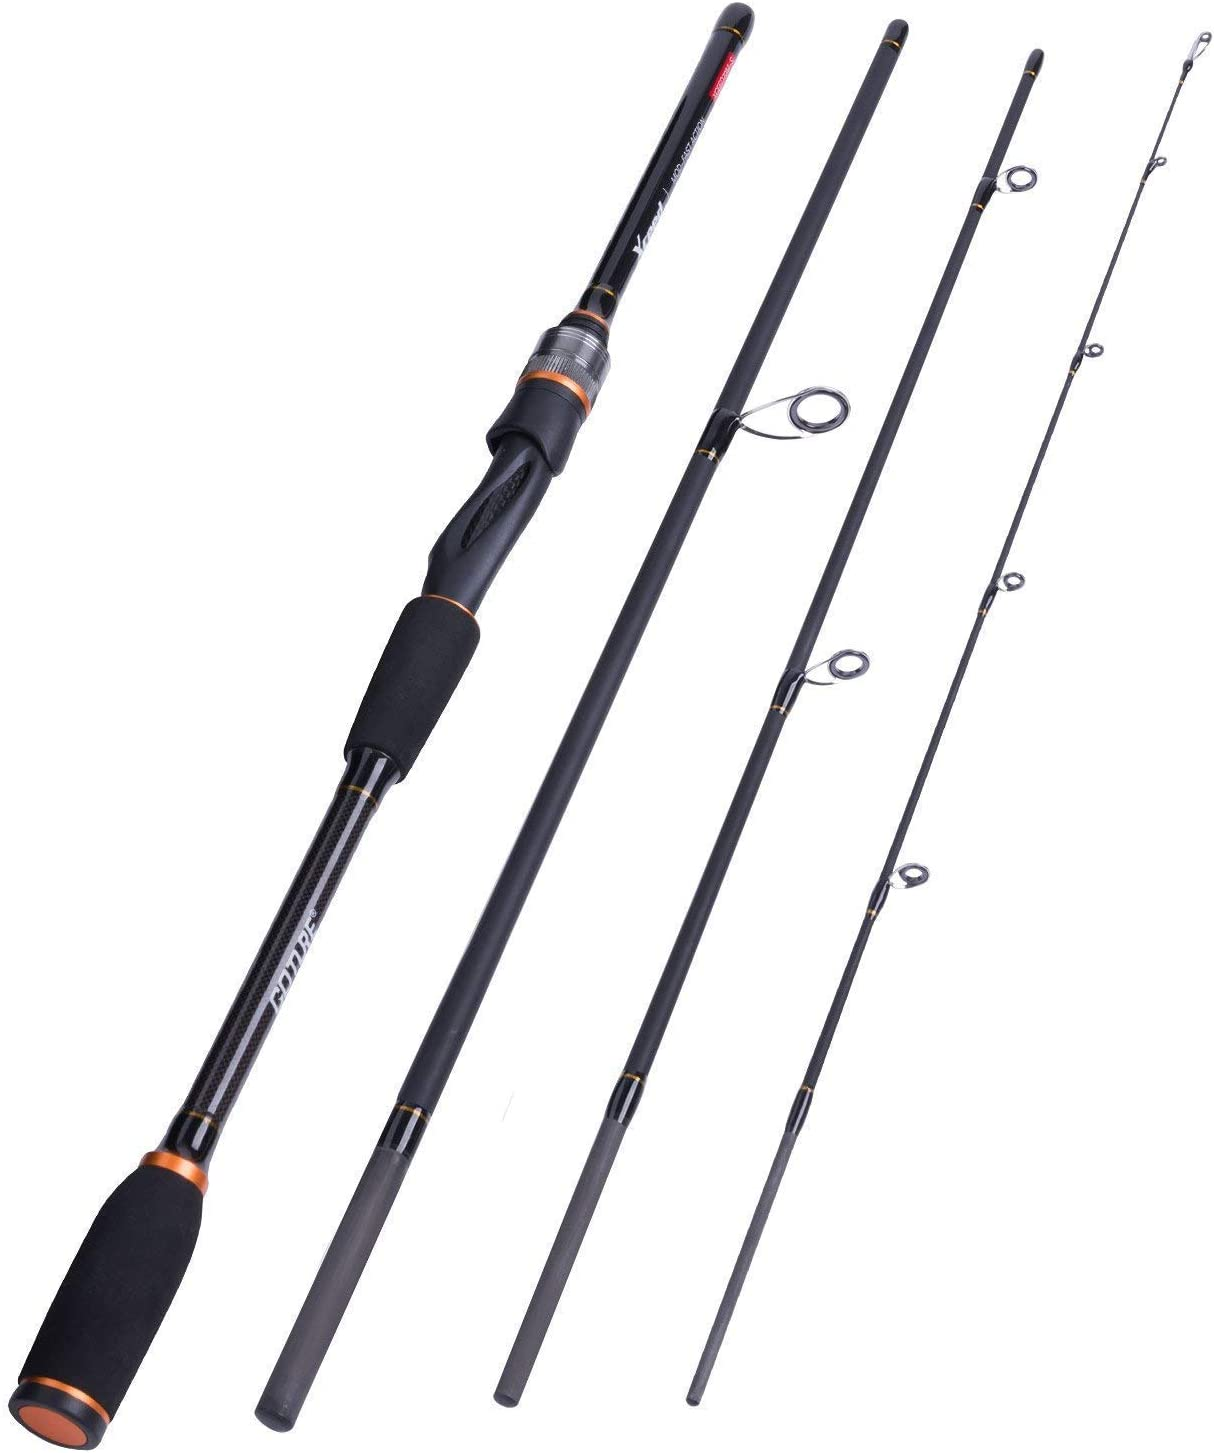 Goture Travel Fishing Pole Spinning Fishing Rods Sections